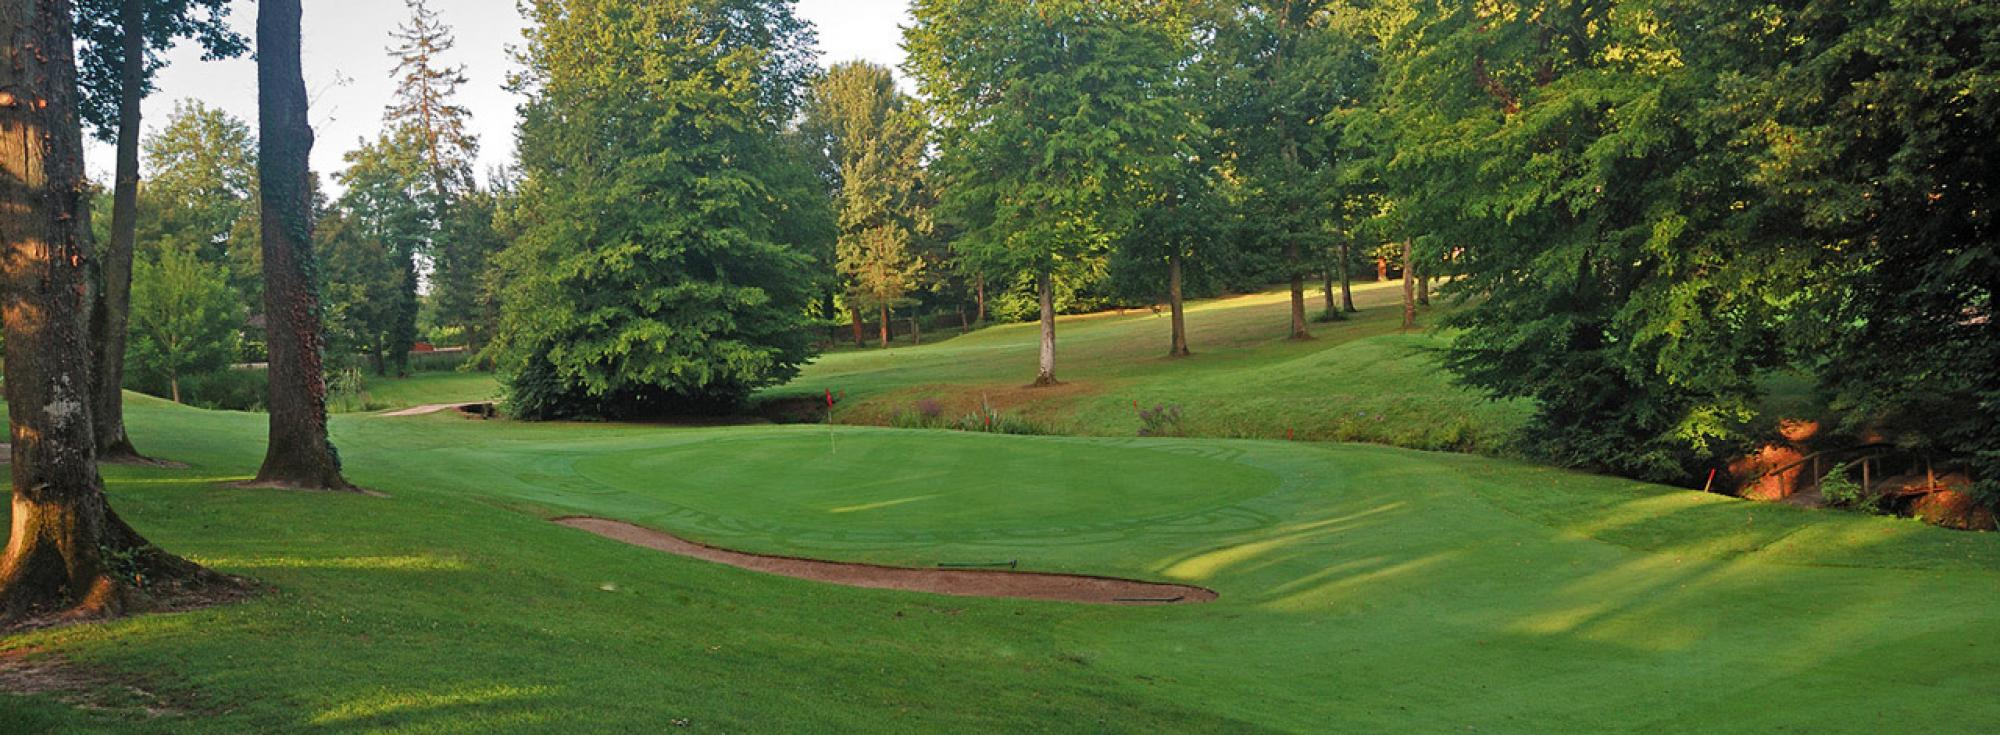 View Golf de Touraine's scenic golf course situated in stunning Loire Valley.